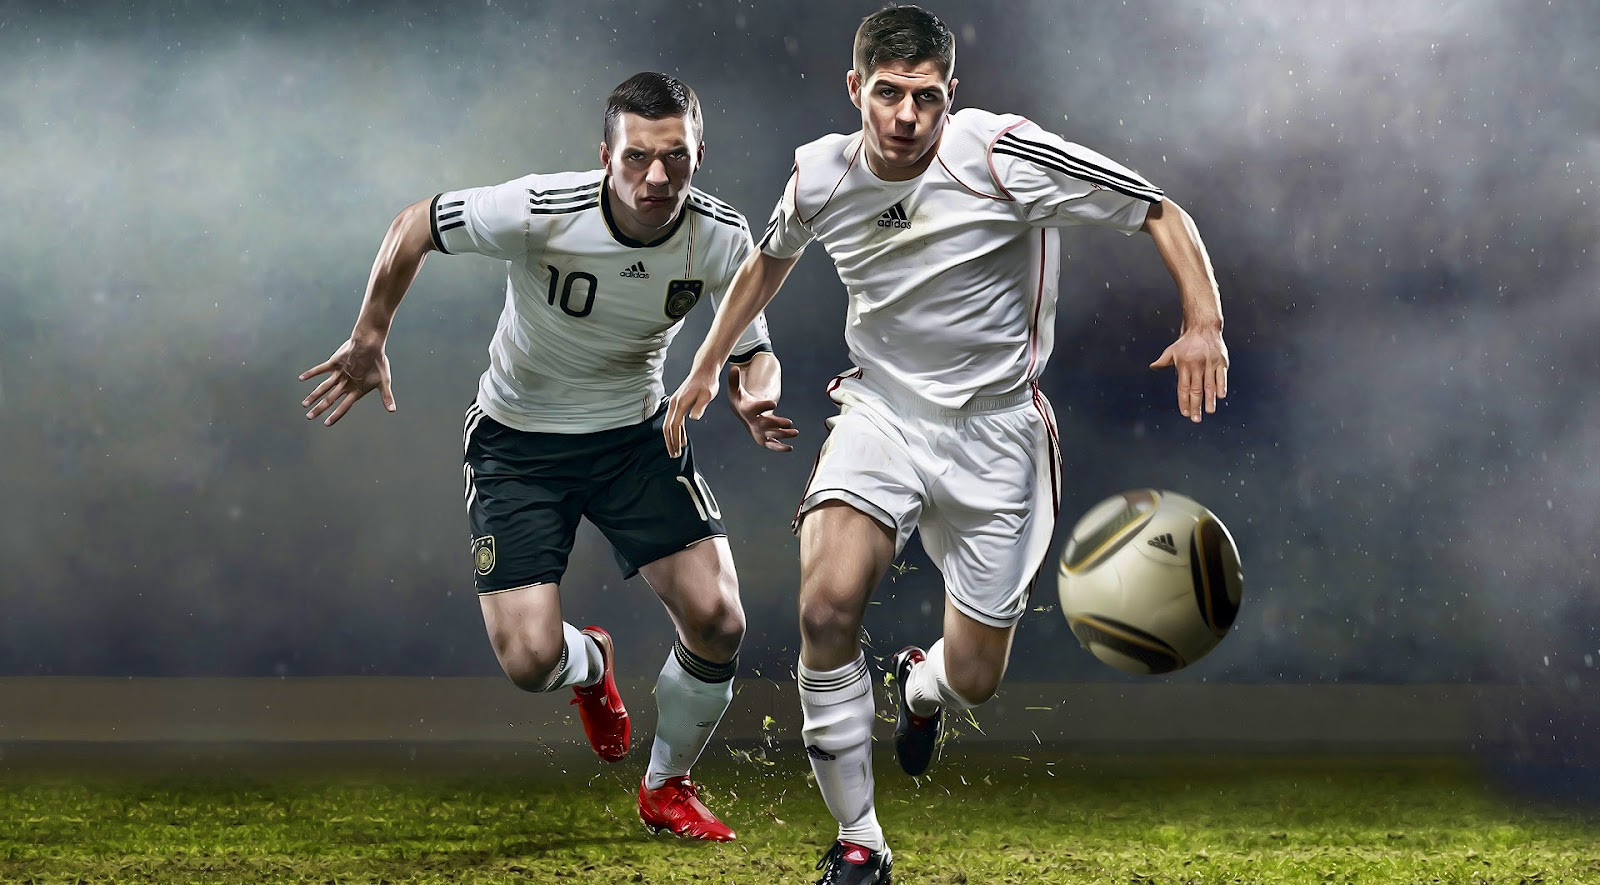 Soccer Players Wallpaper